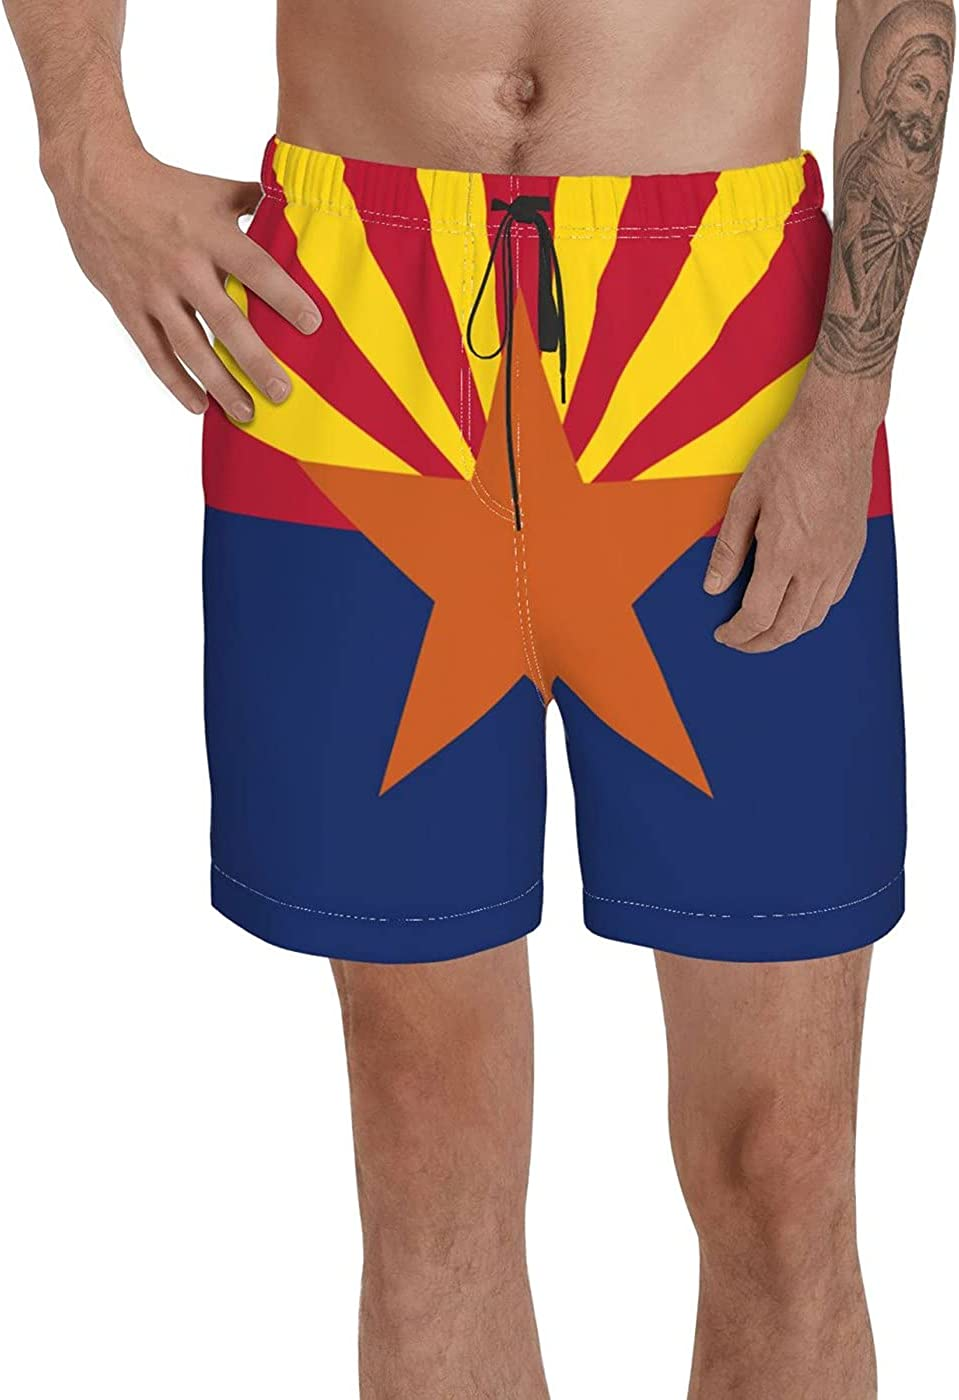 Arizona State Polyester Flag Men's 3D Printed Funny Summer Quick Dry Swim Short Board Shorts with